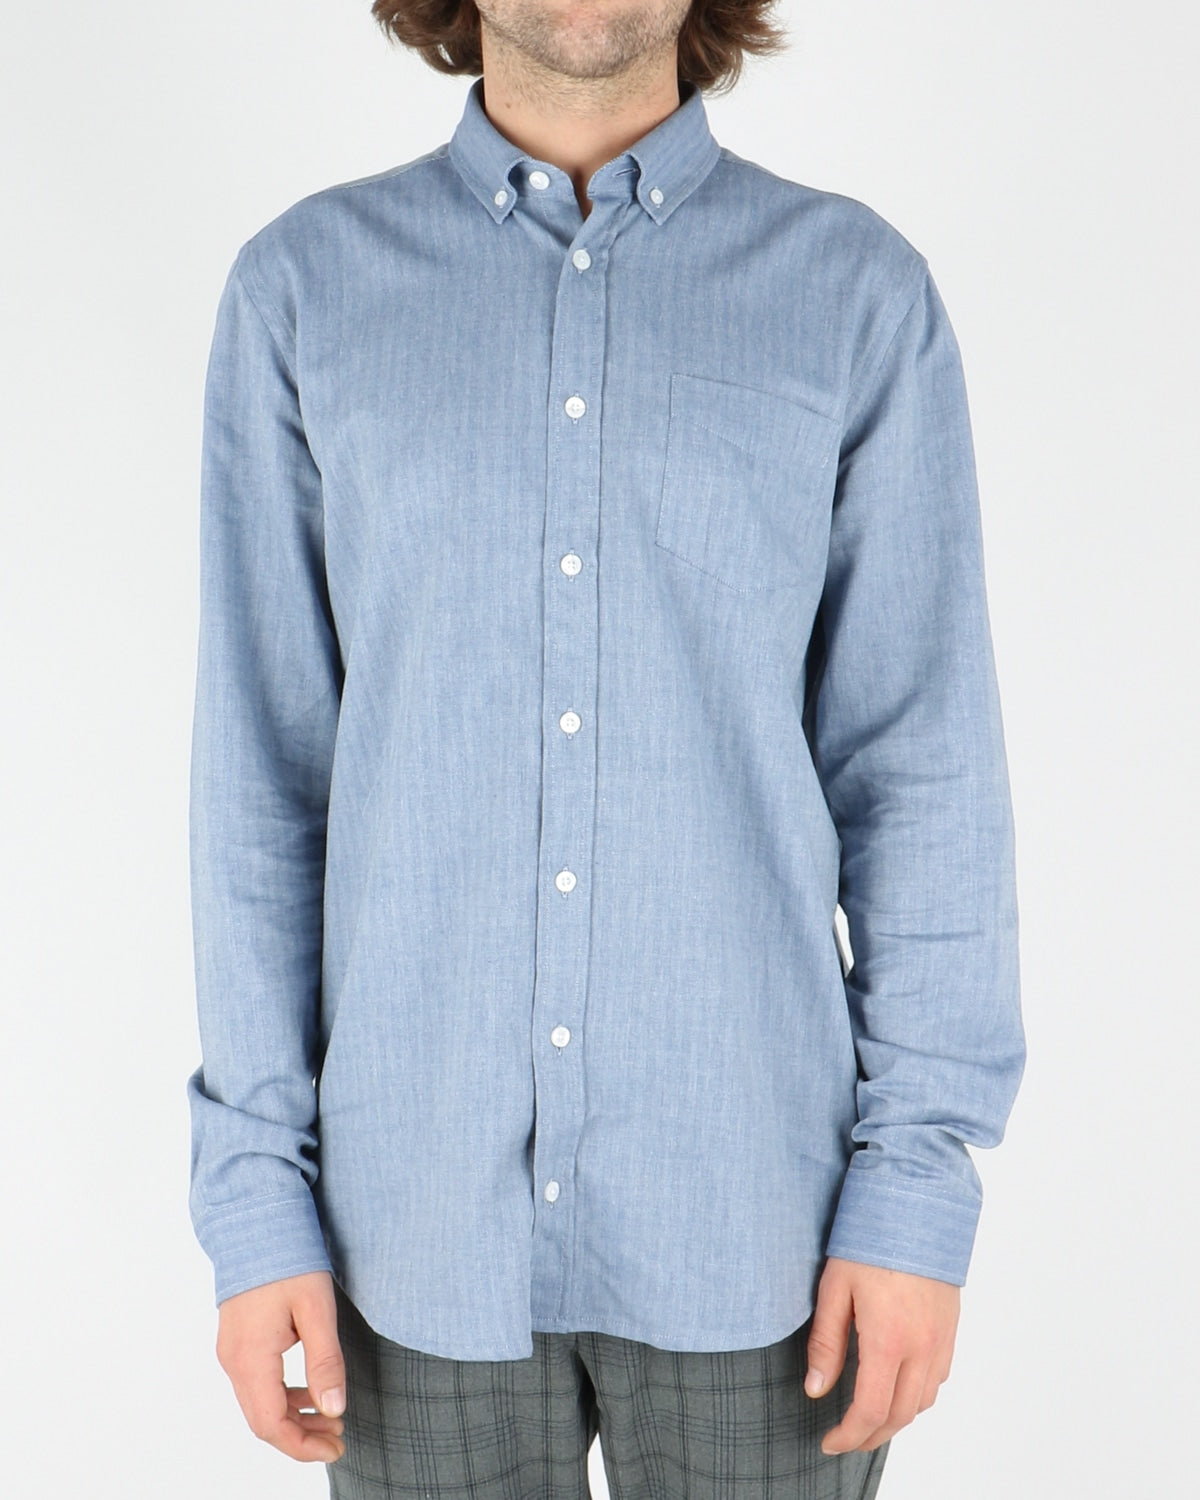 libertine libertine_hunter shirt_dark navy_1_4